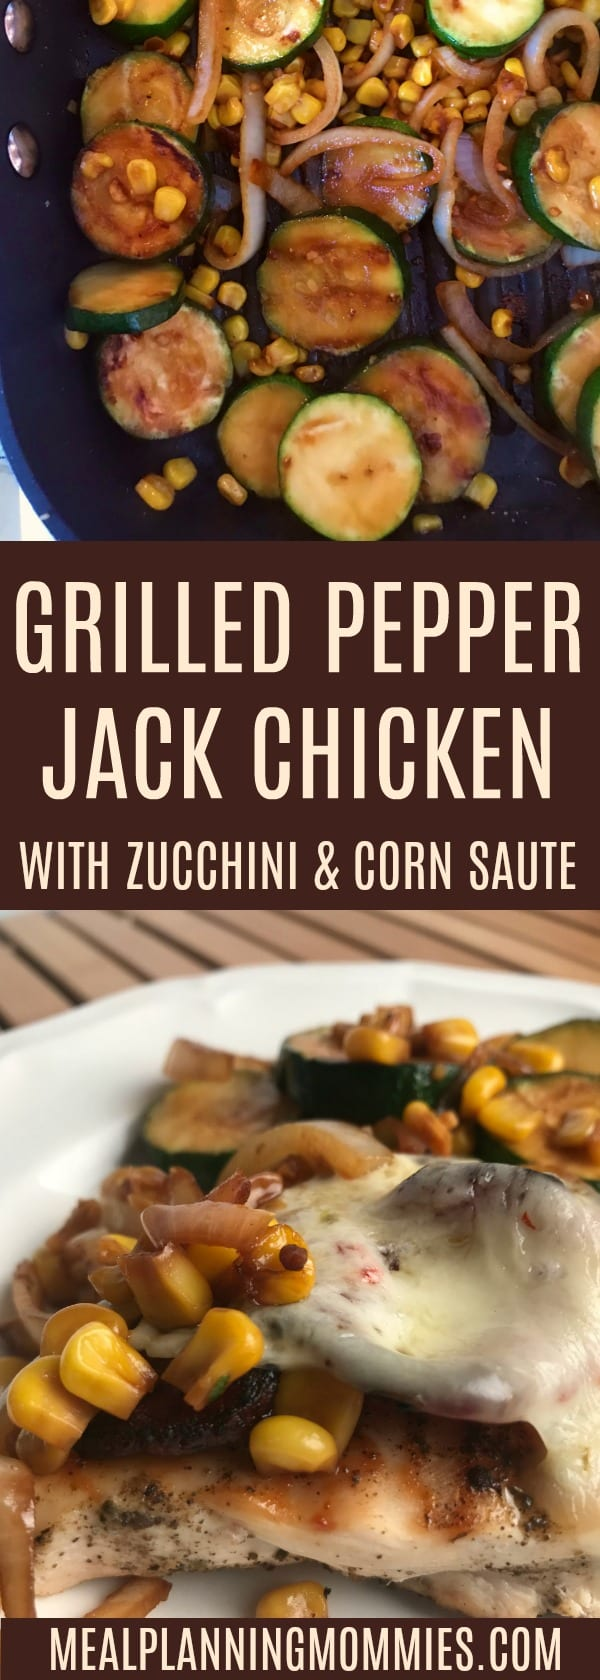 grilled peper jack chicken with zucchini & corn saute